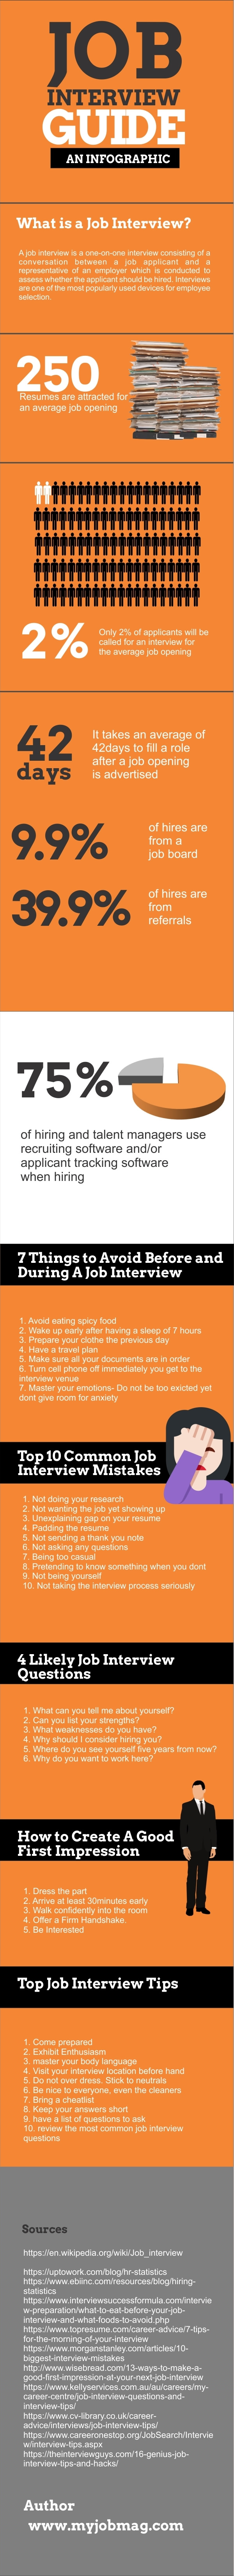 job interview guide infographics